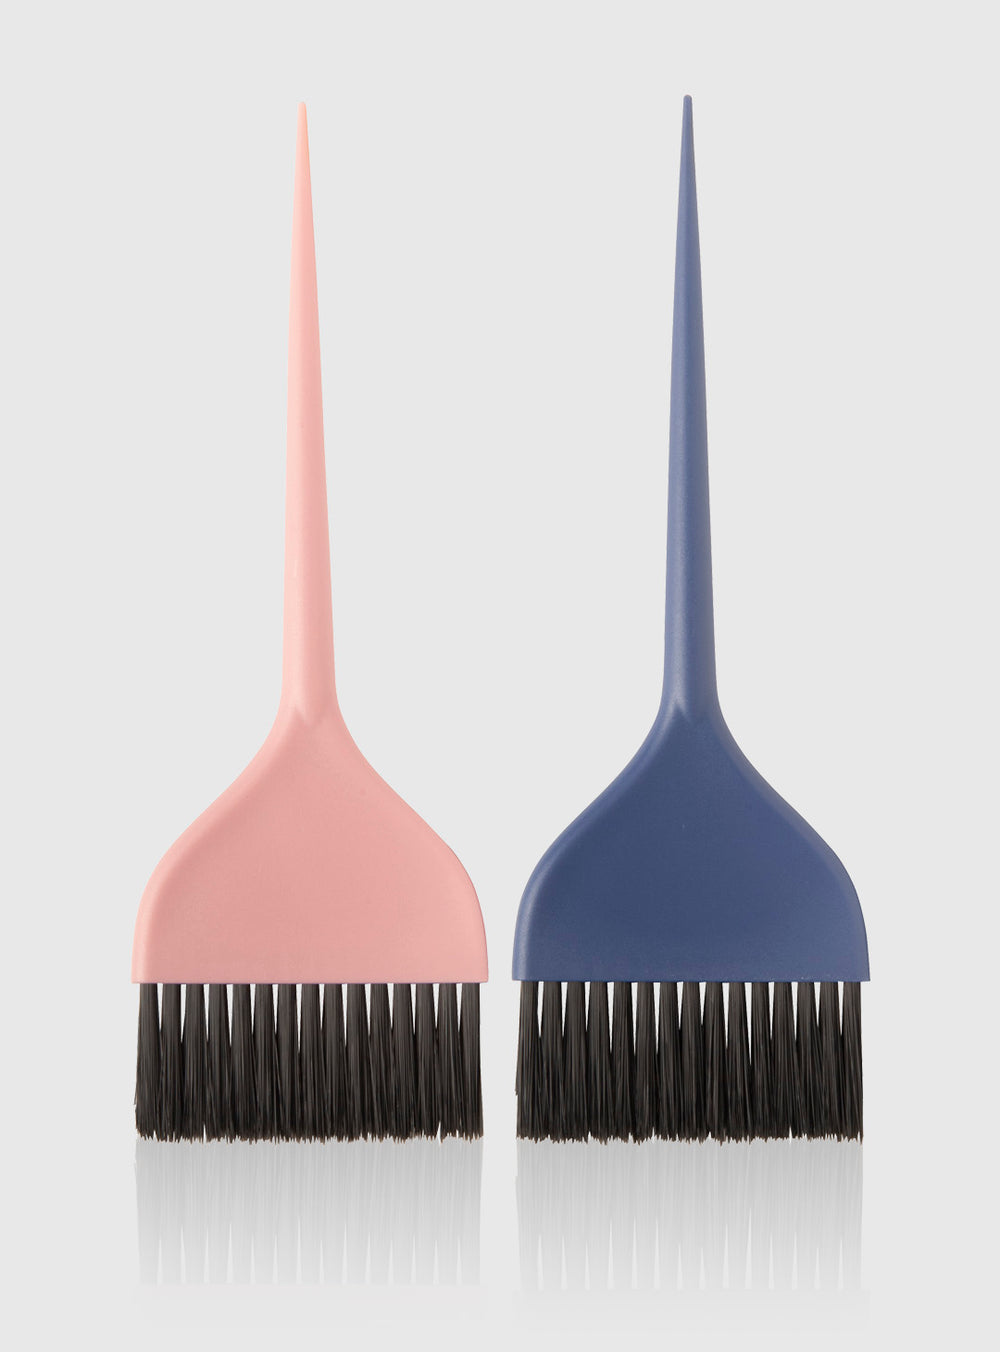 "Fromm Pro Professional Hair Salon 2 7/8"" Soft Color Brush 2 Pack in Pink & Blue"